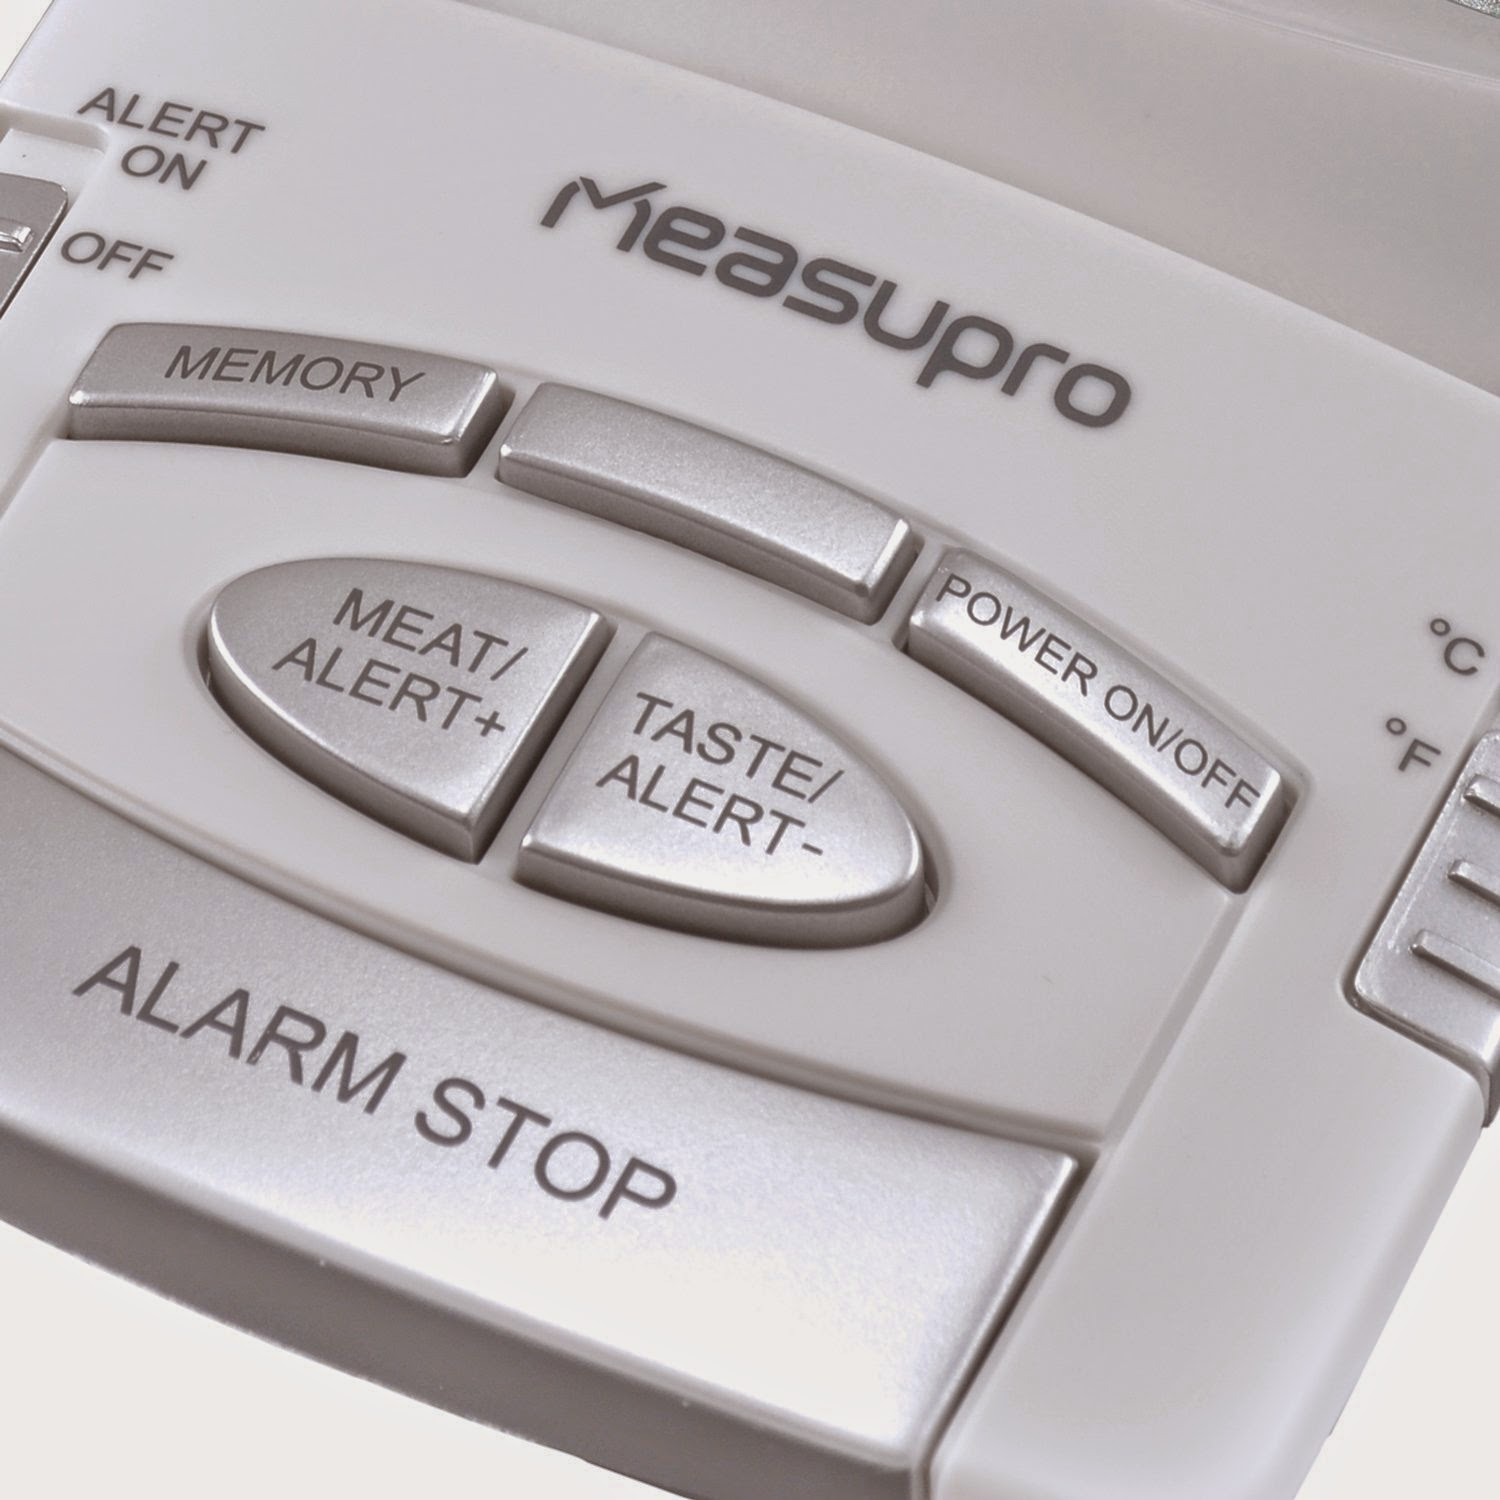 MeasuPro Programmable Cooking Thermometer